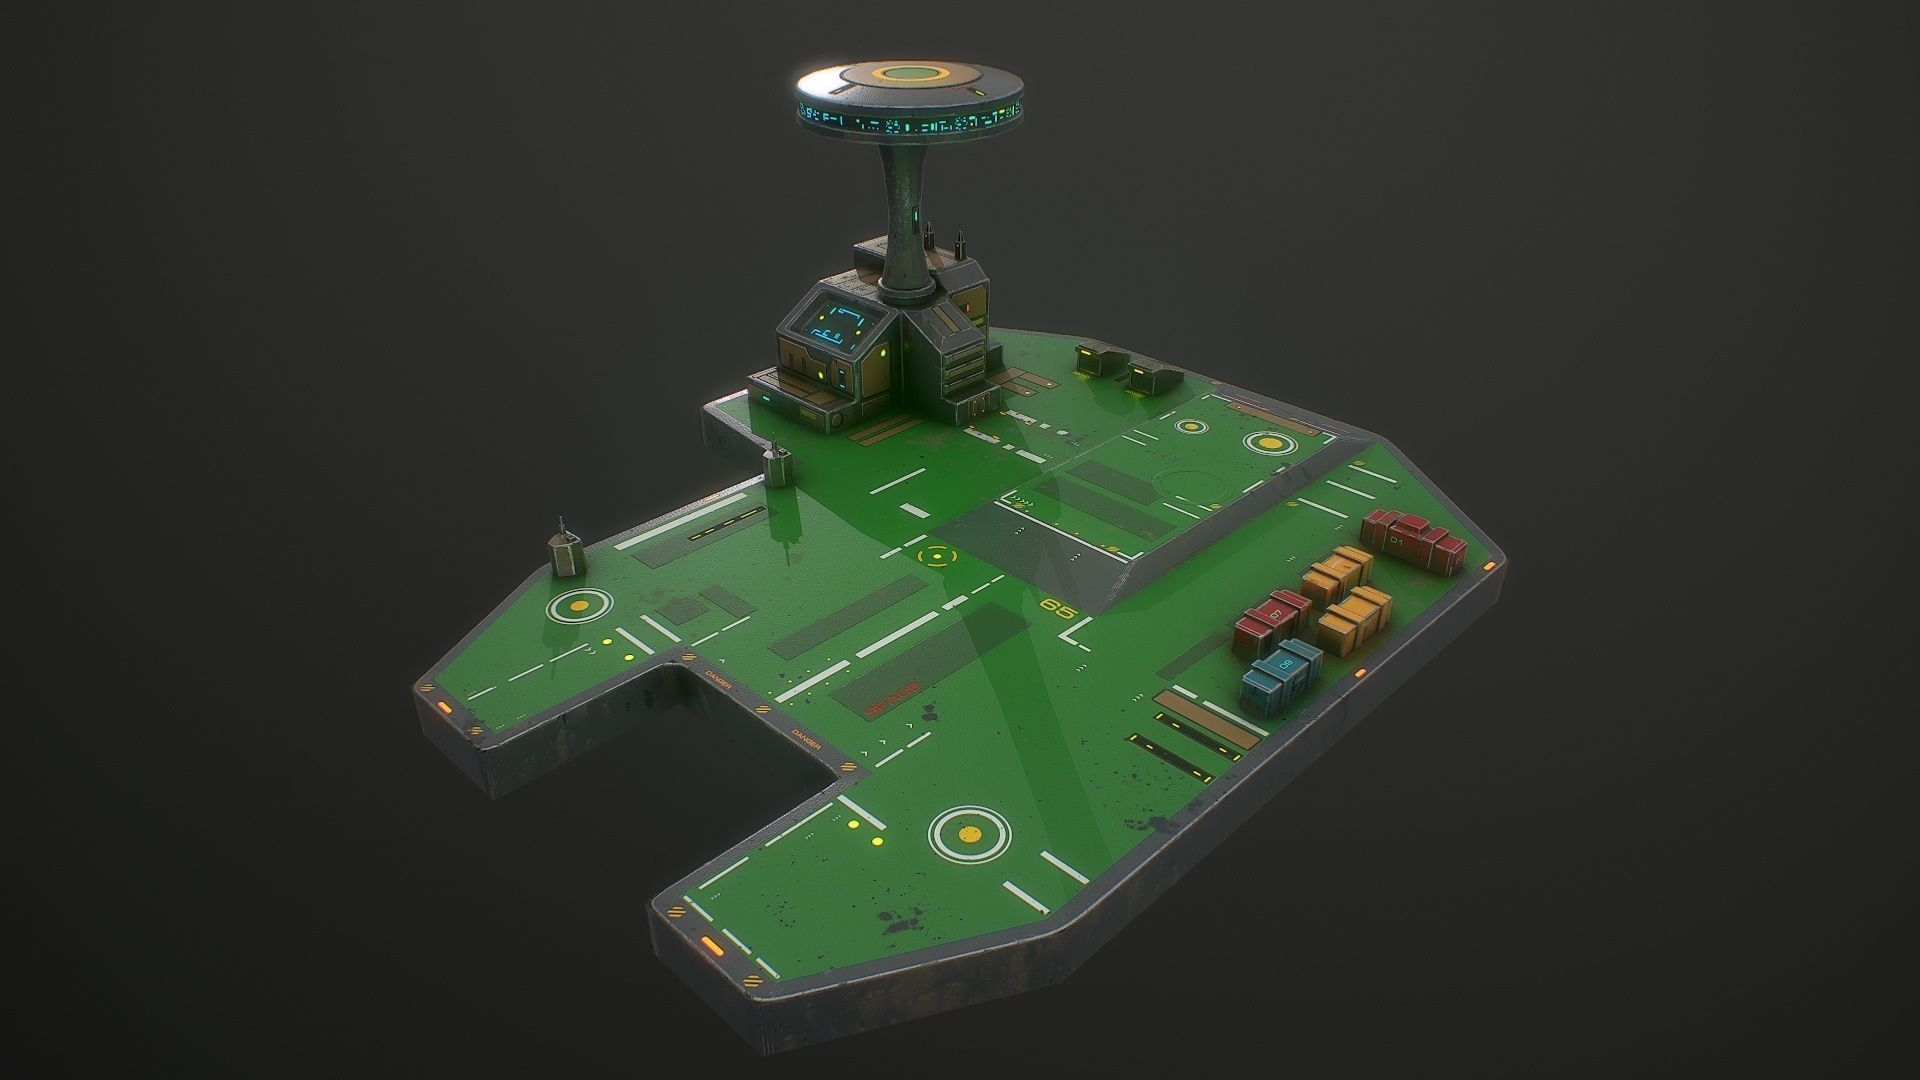 Low poly sci fi airport environment asset | 3D model